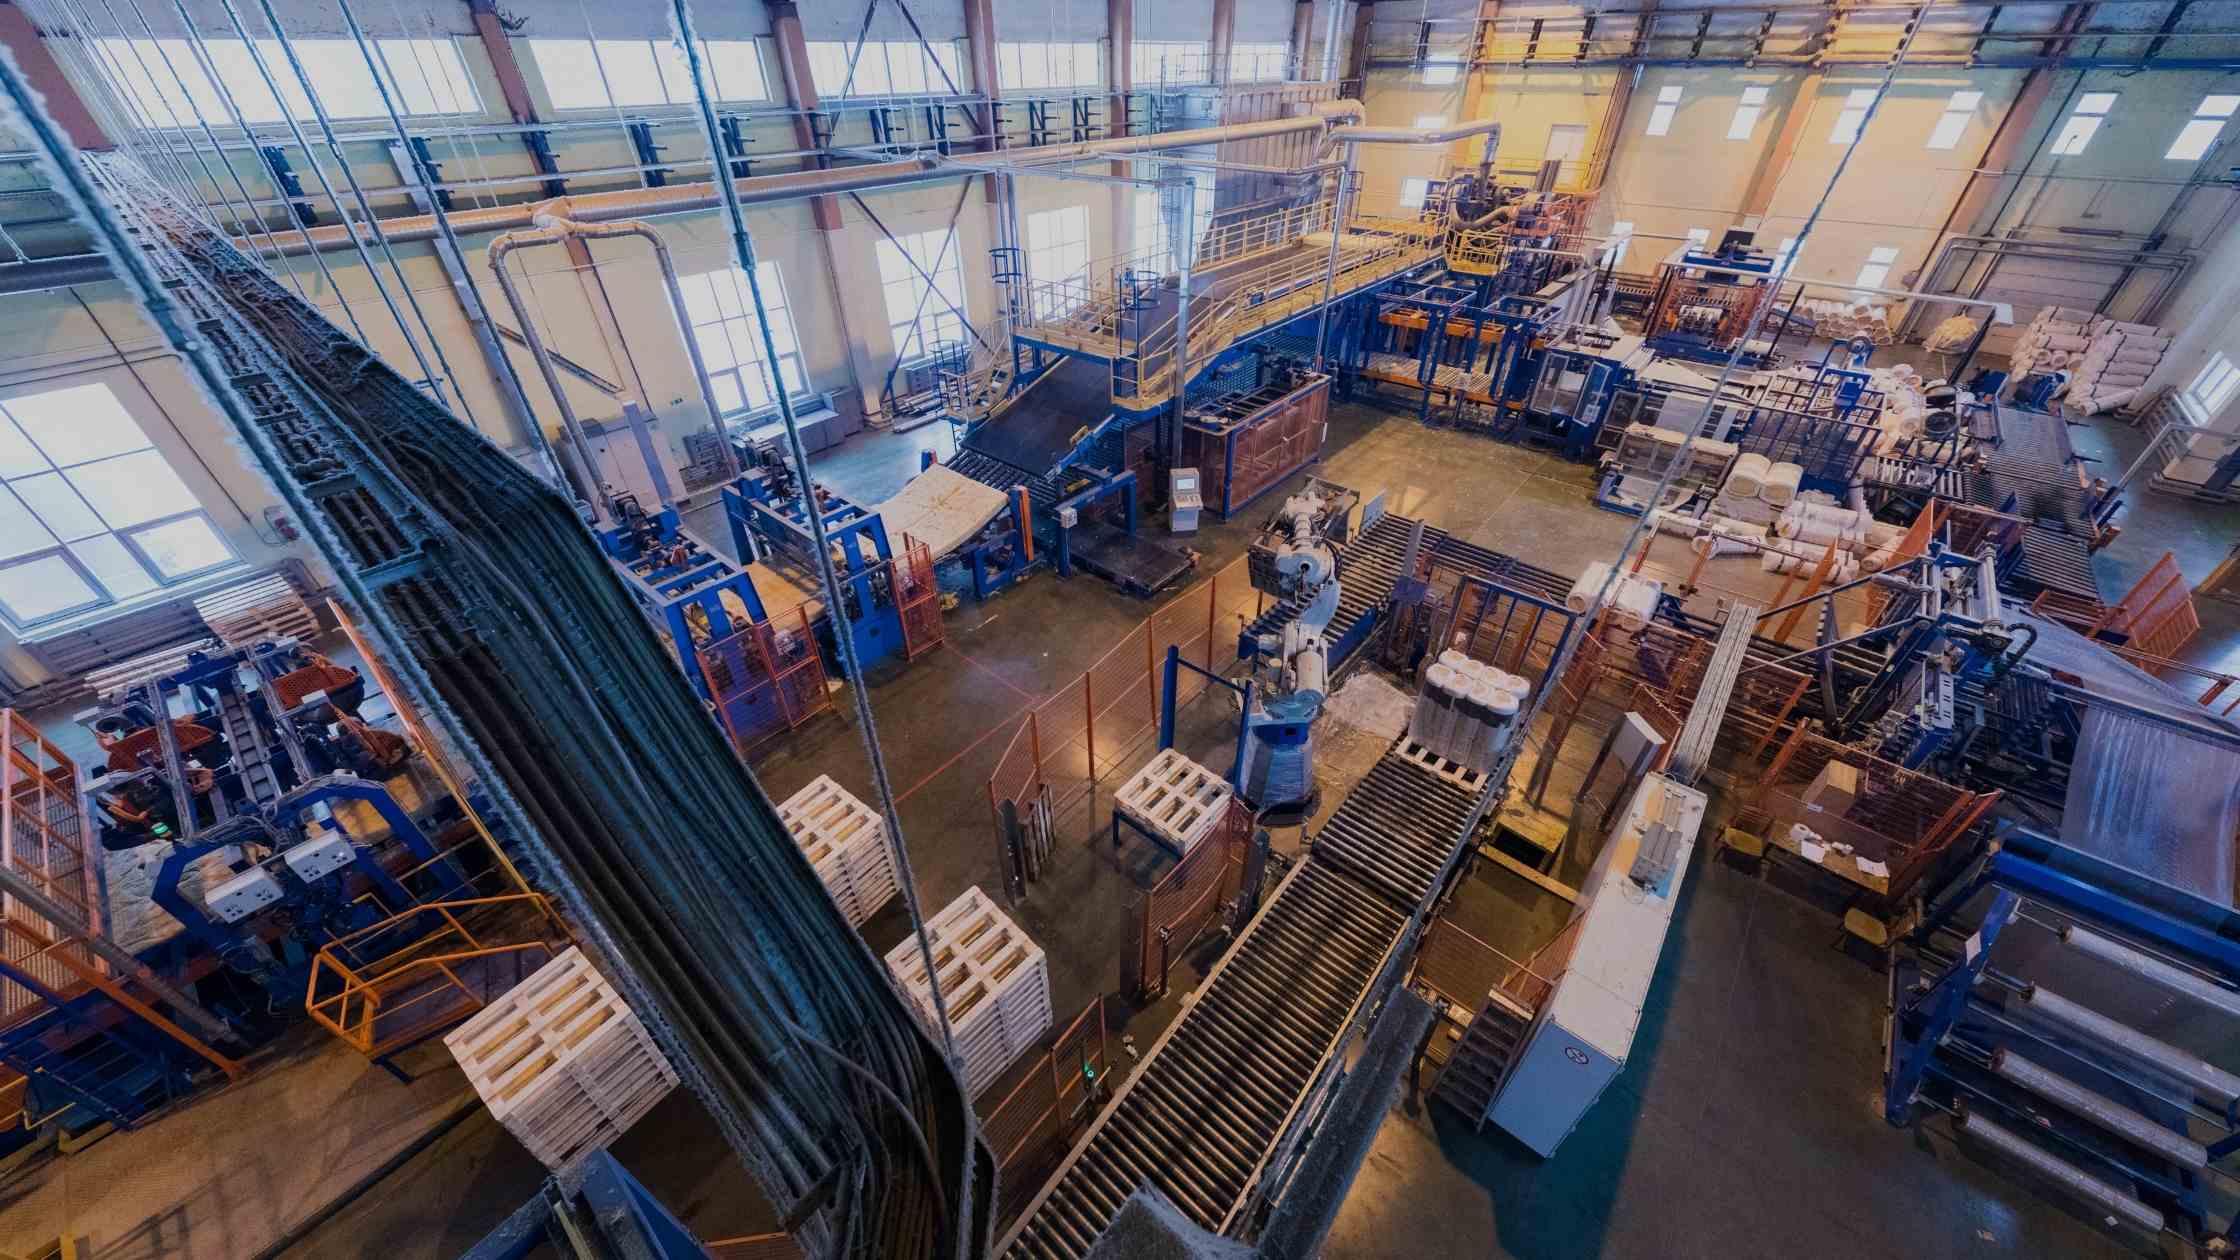 Lean Manufacturing - Most Effective Way of Production